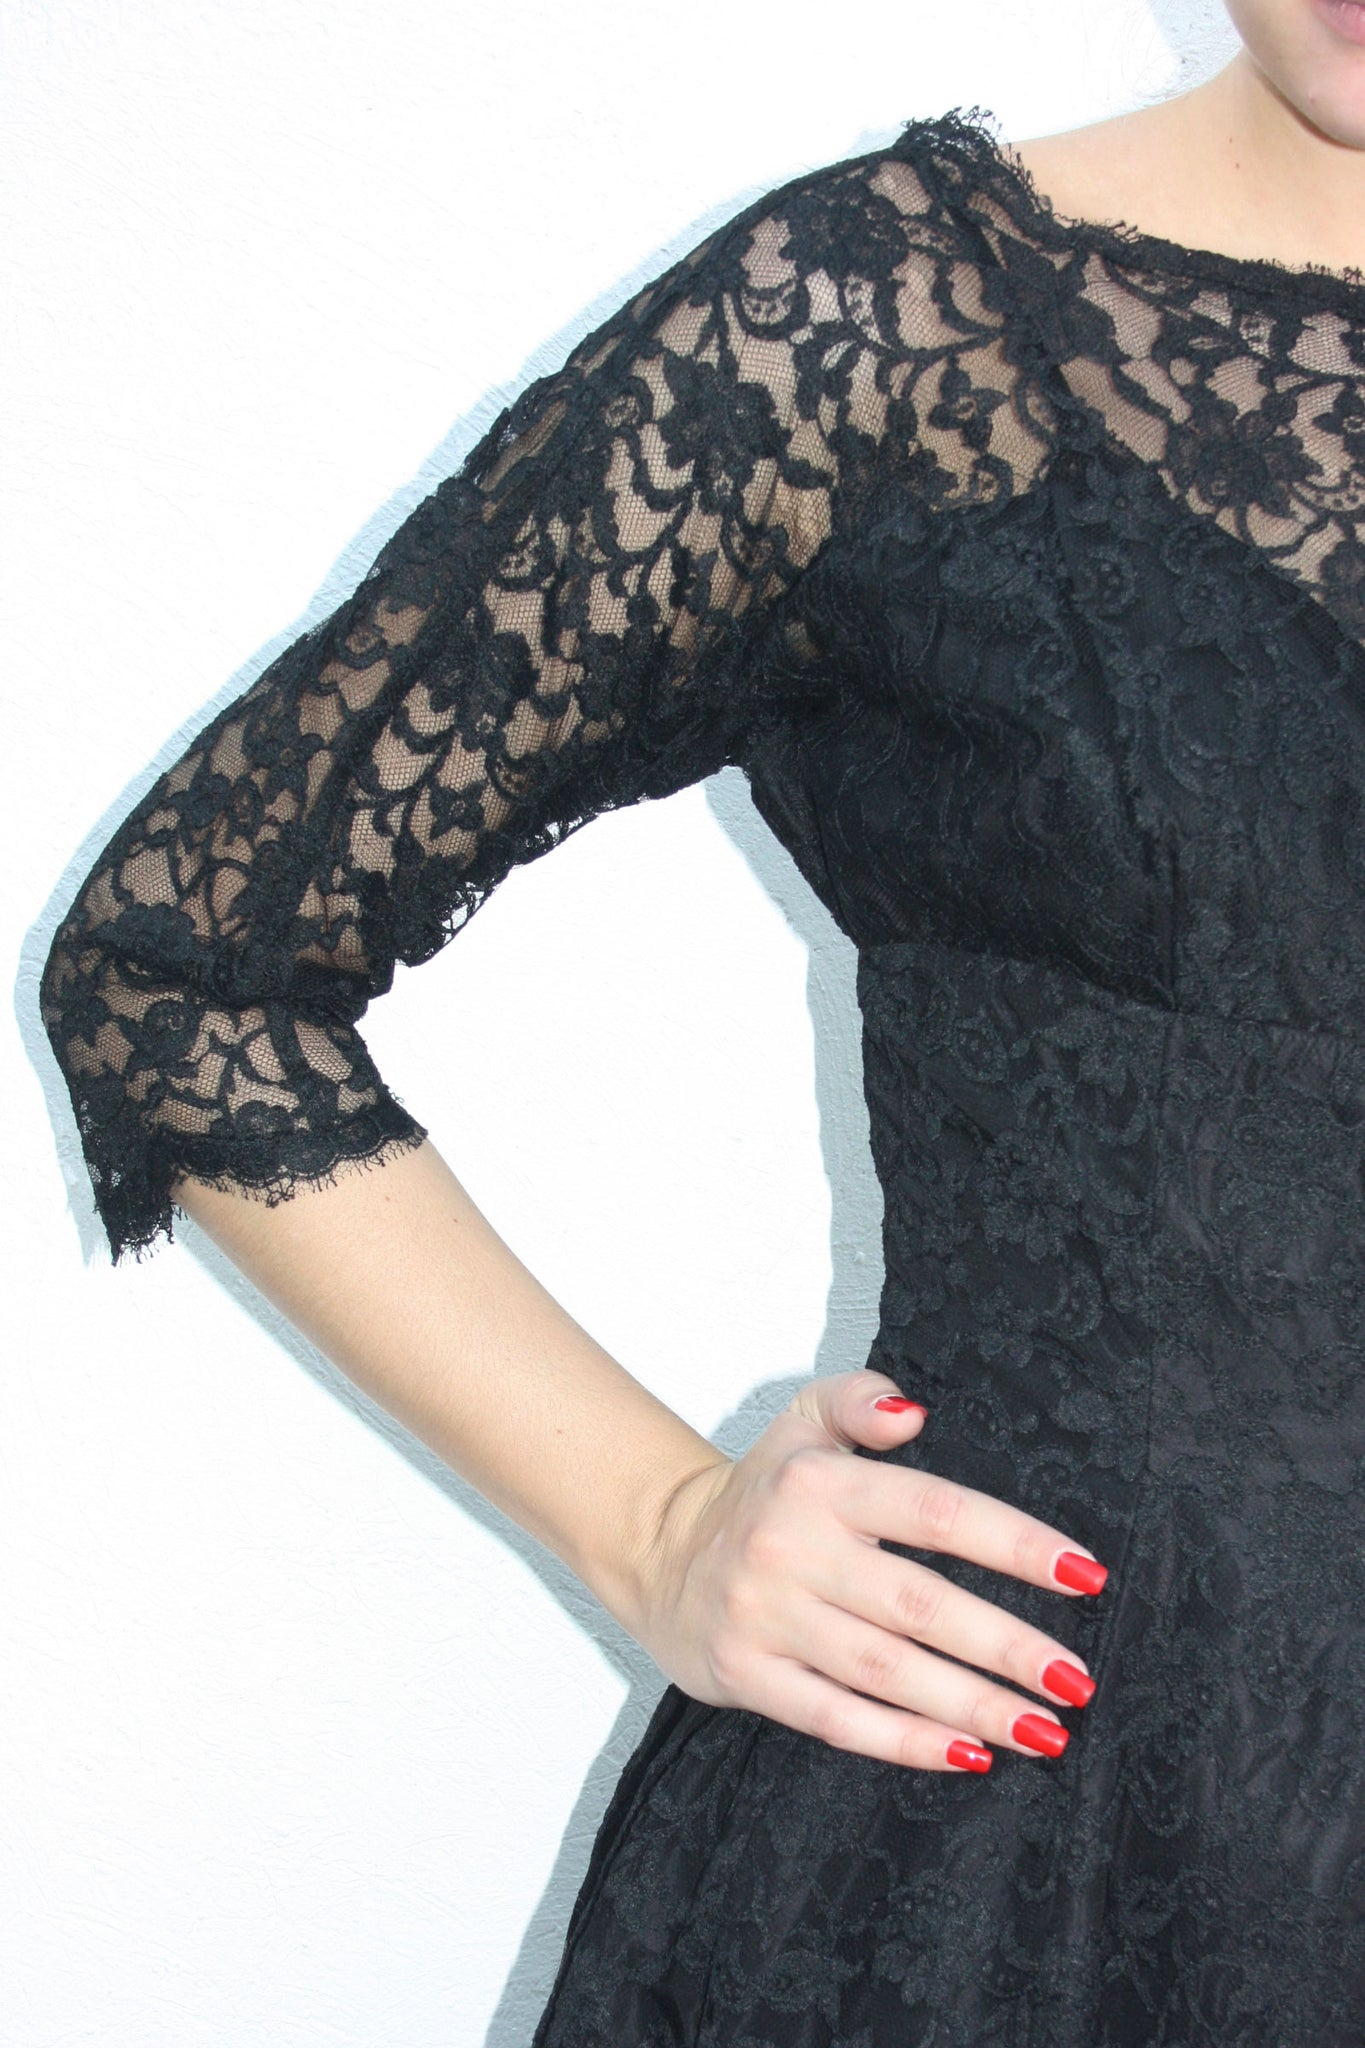 40's black vintage lace dress - Shop SoLovesVintage